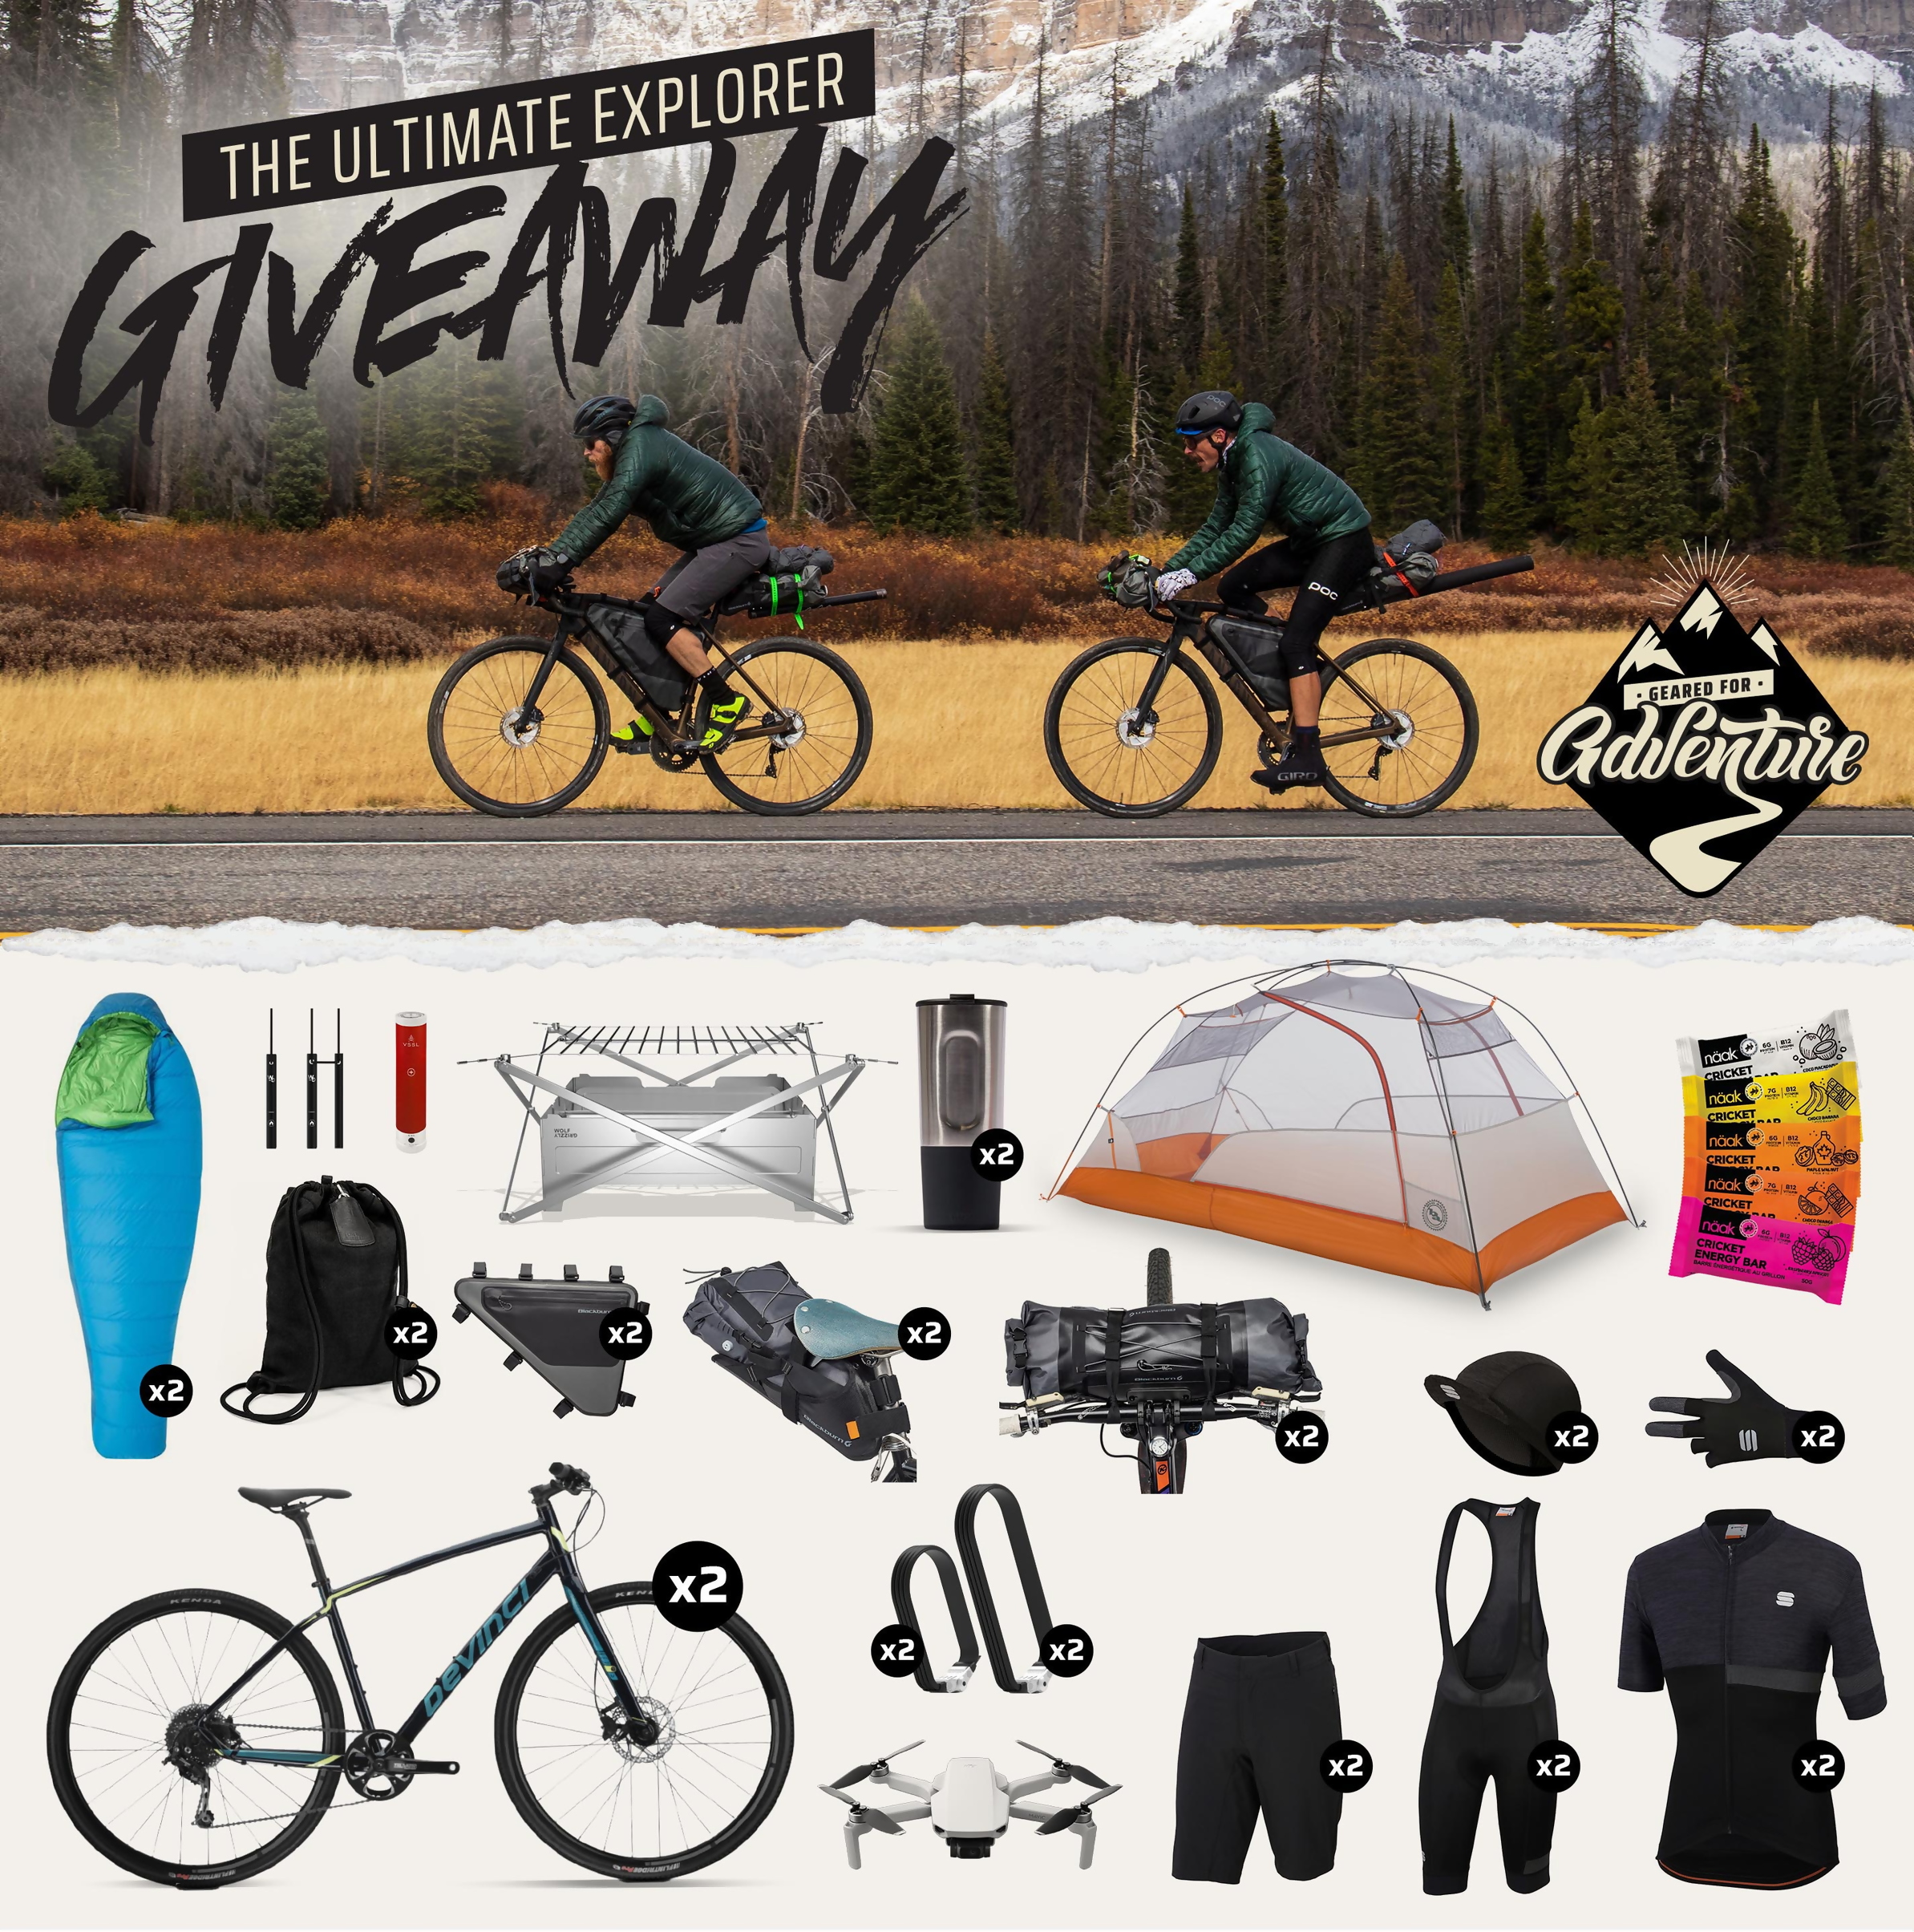 The Ultimate Explorer Giveaway